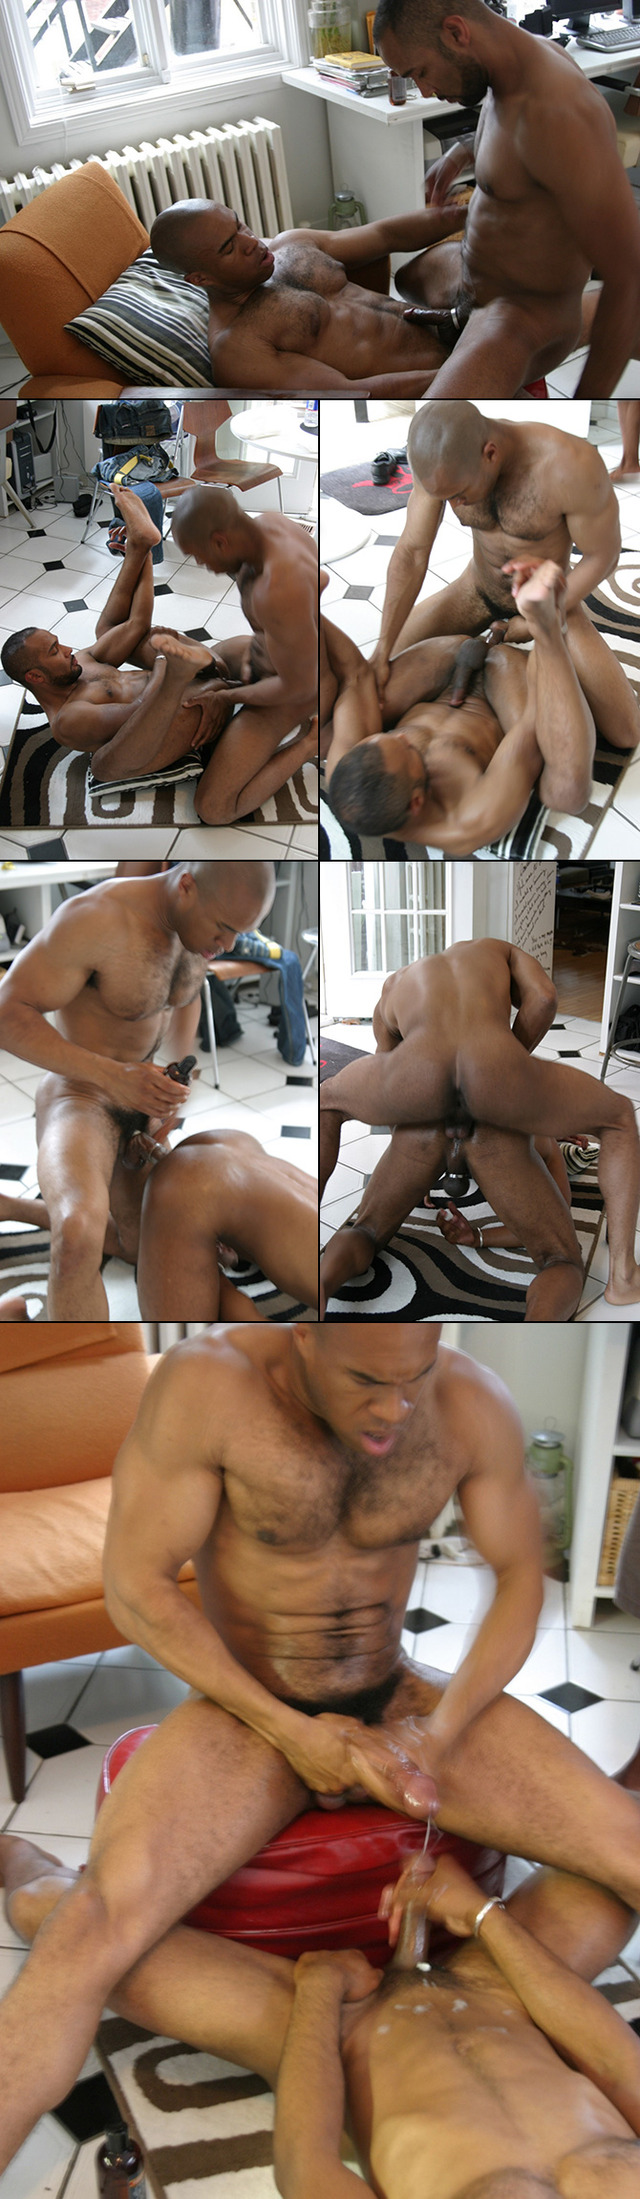 black gay porn with big dicks porn cock gay young collages servicing nextdoorebony blood monster sisco plumbers